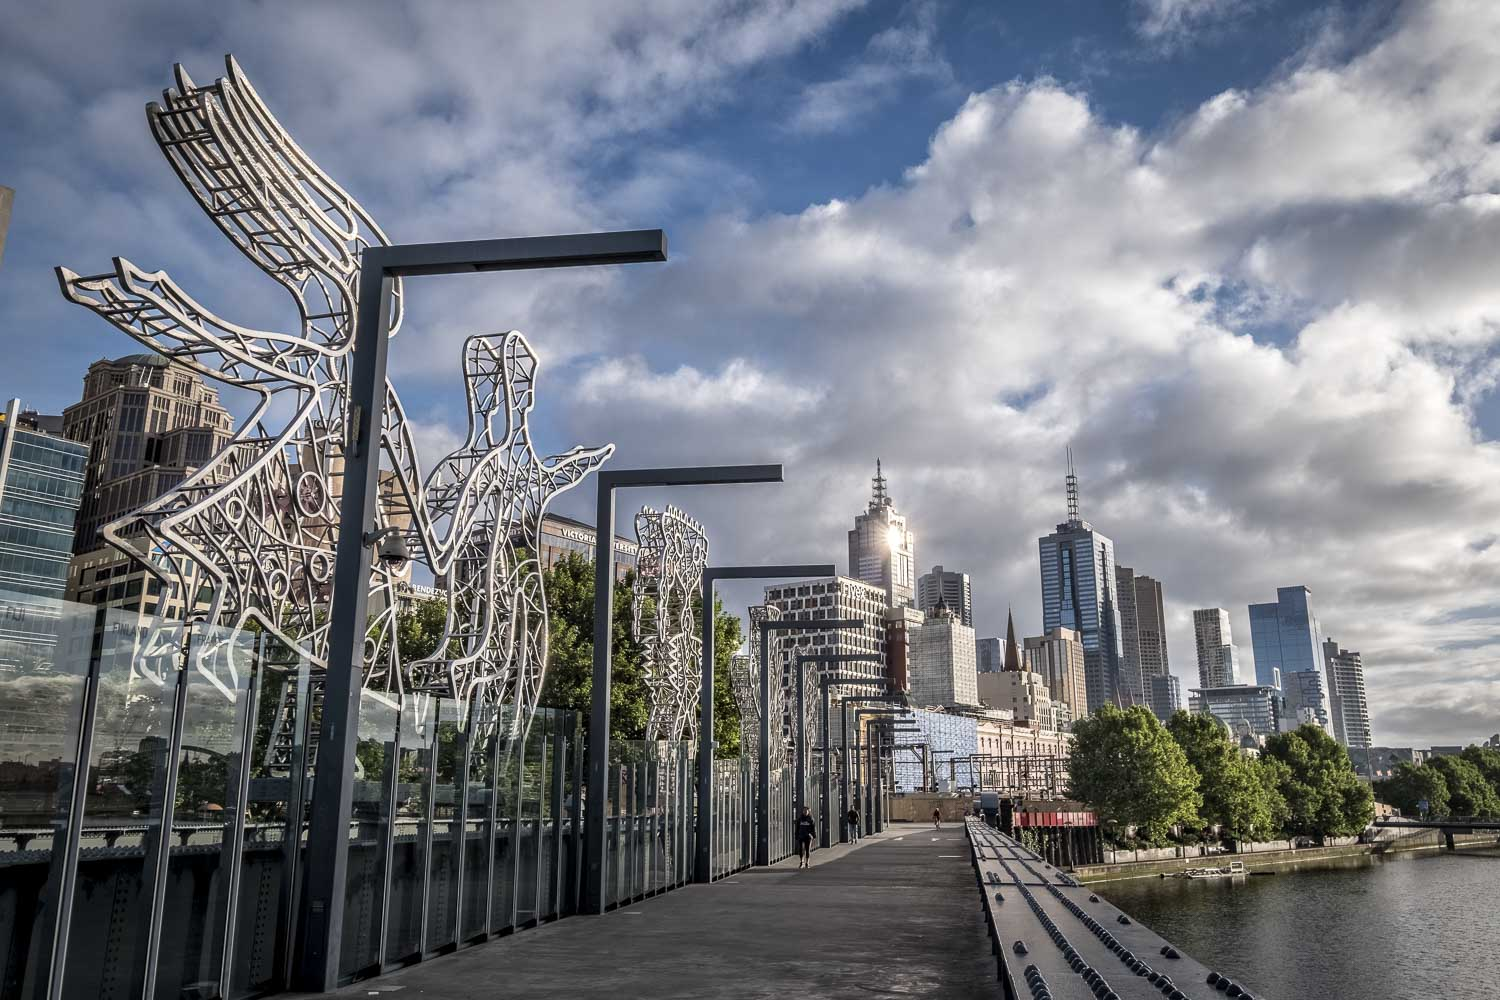 Sandridge bridge art, Melbourne